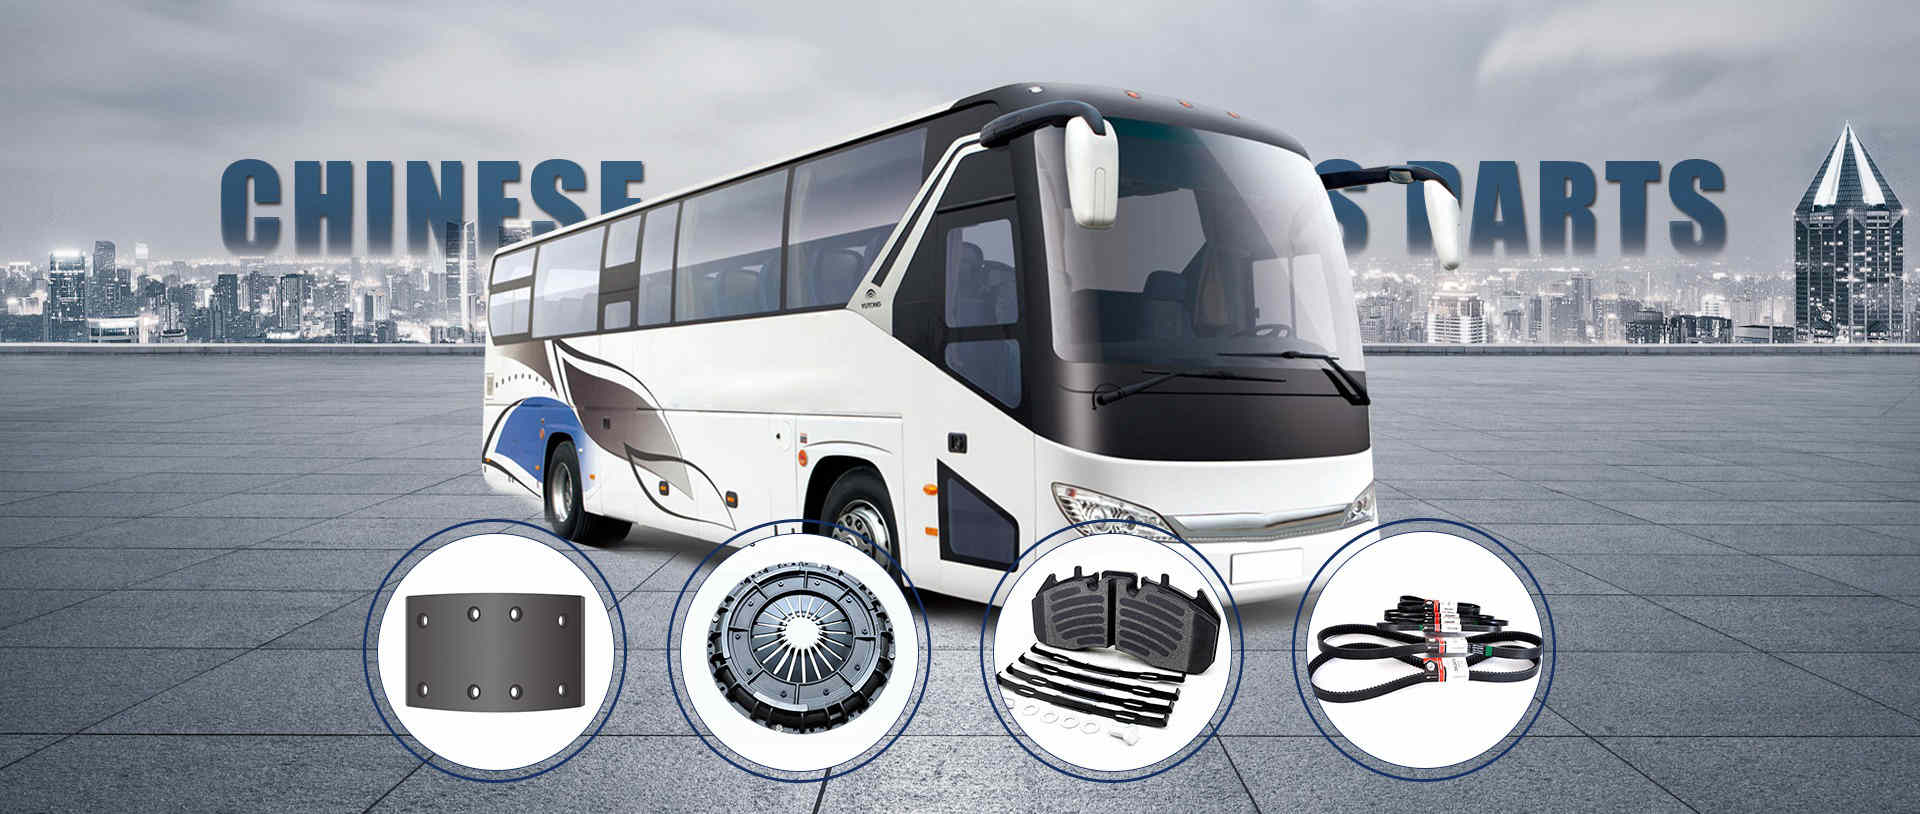 Reliable Chinese brand Commercial vehicles (BUS AND TRUCK) spare parts supplier since 2017.